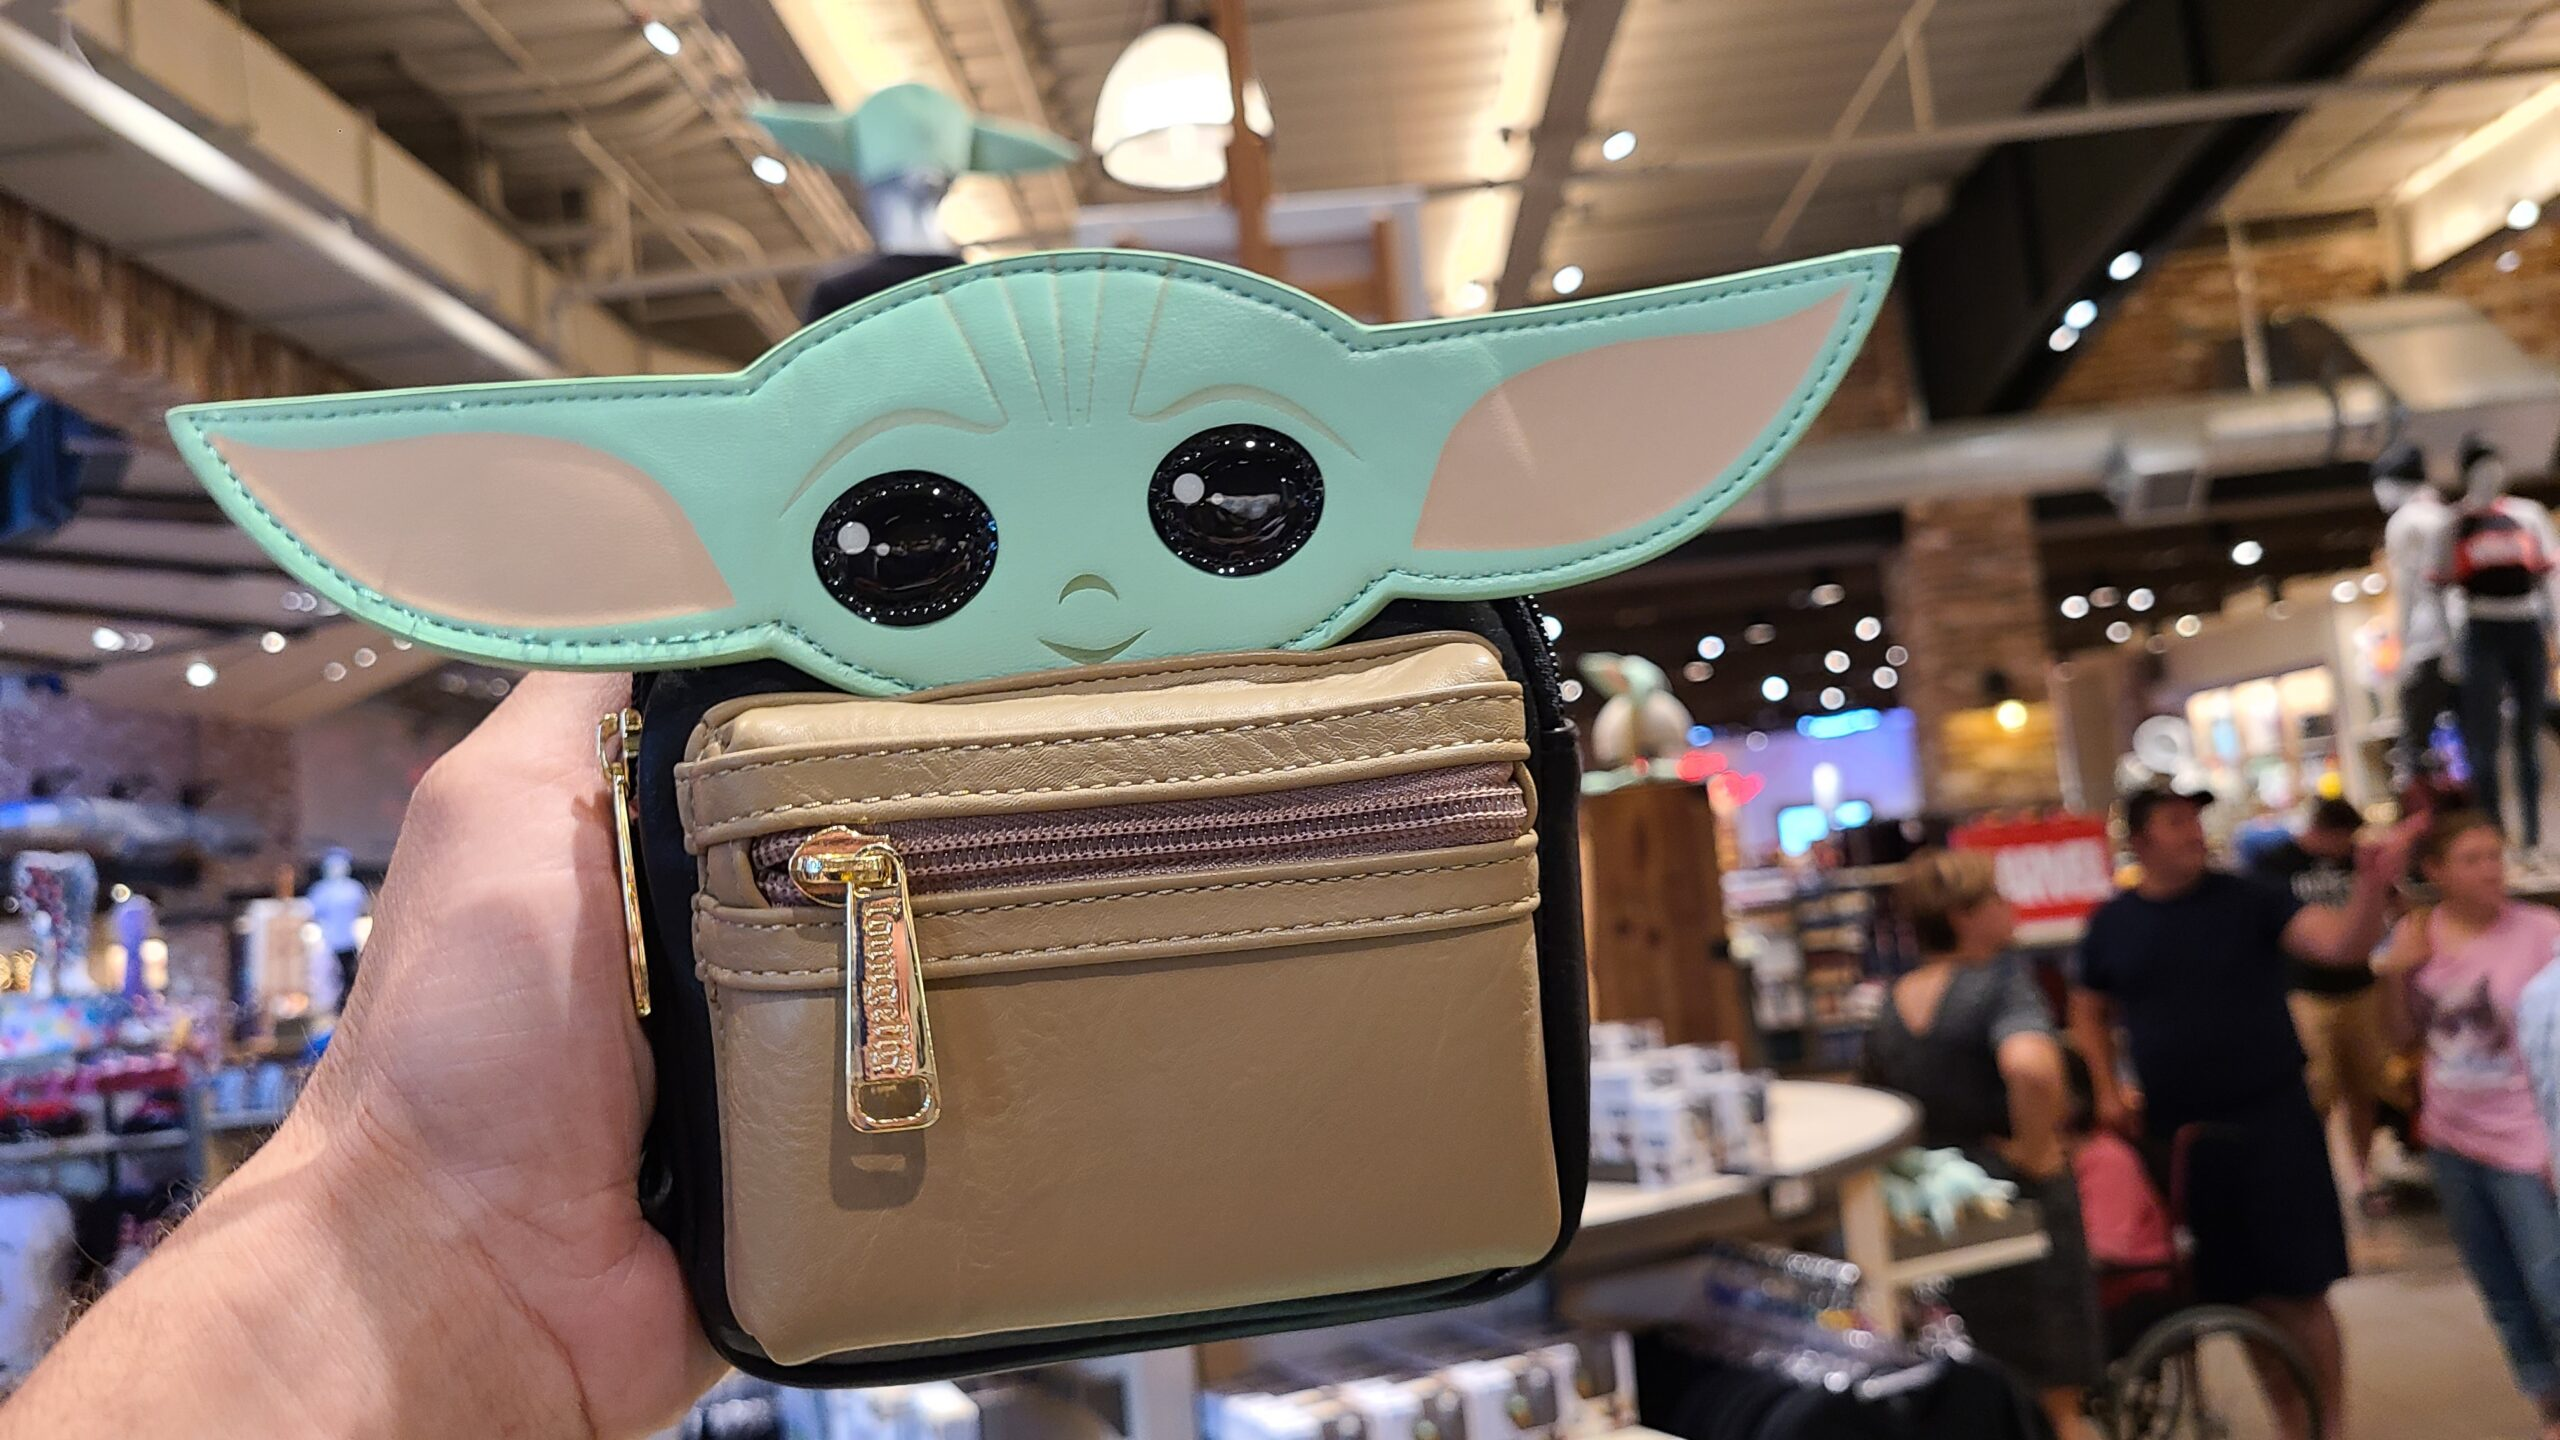 Super-Cute Baby Yoda Wristlet is a must-have for any Mandalorian fan 1